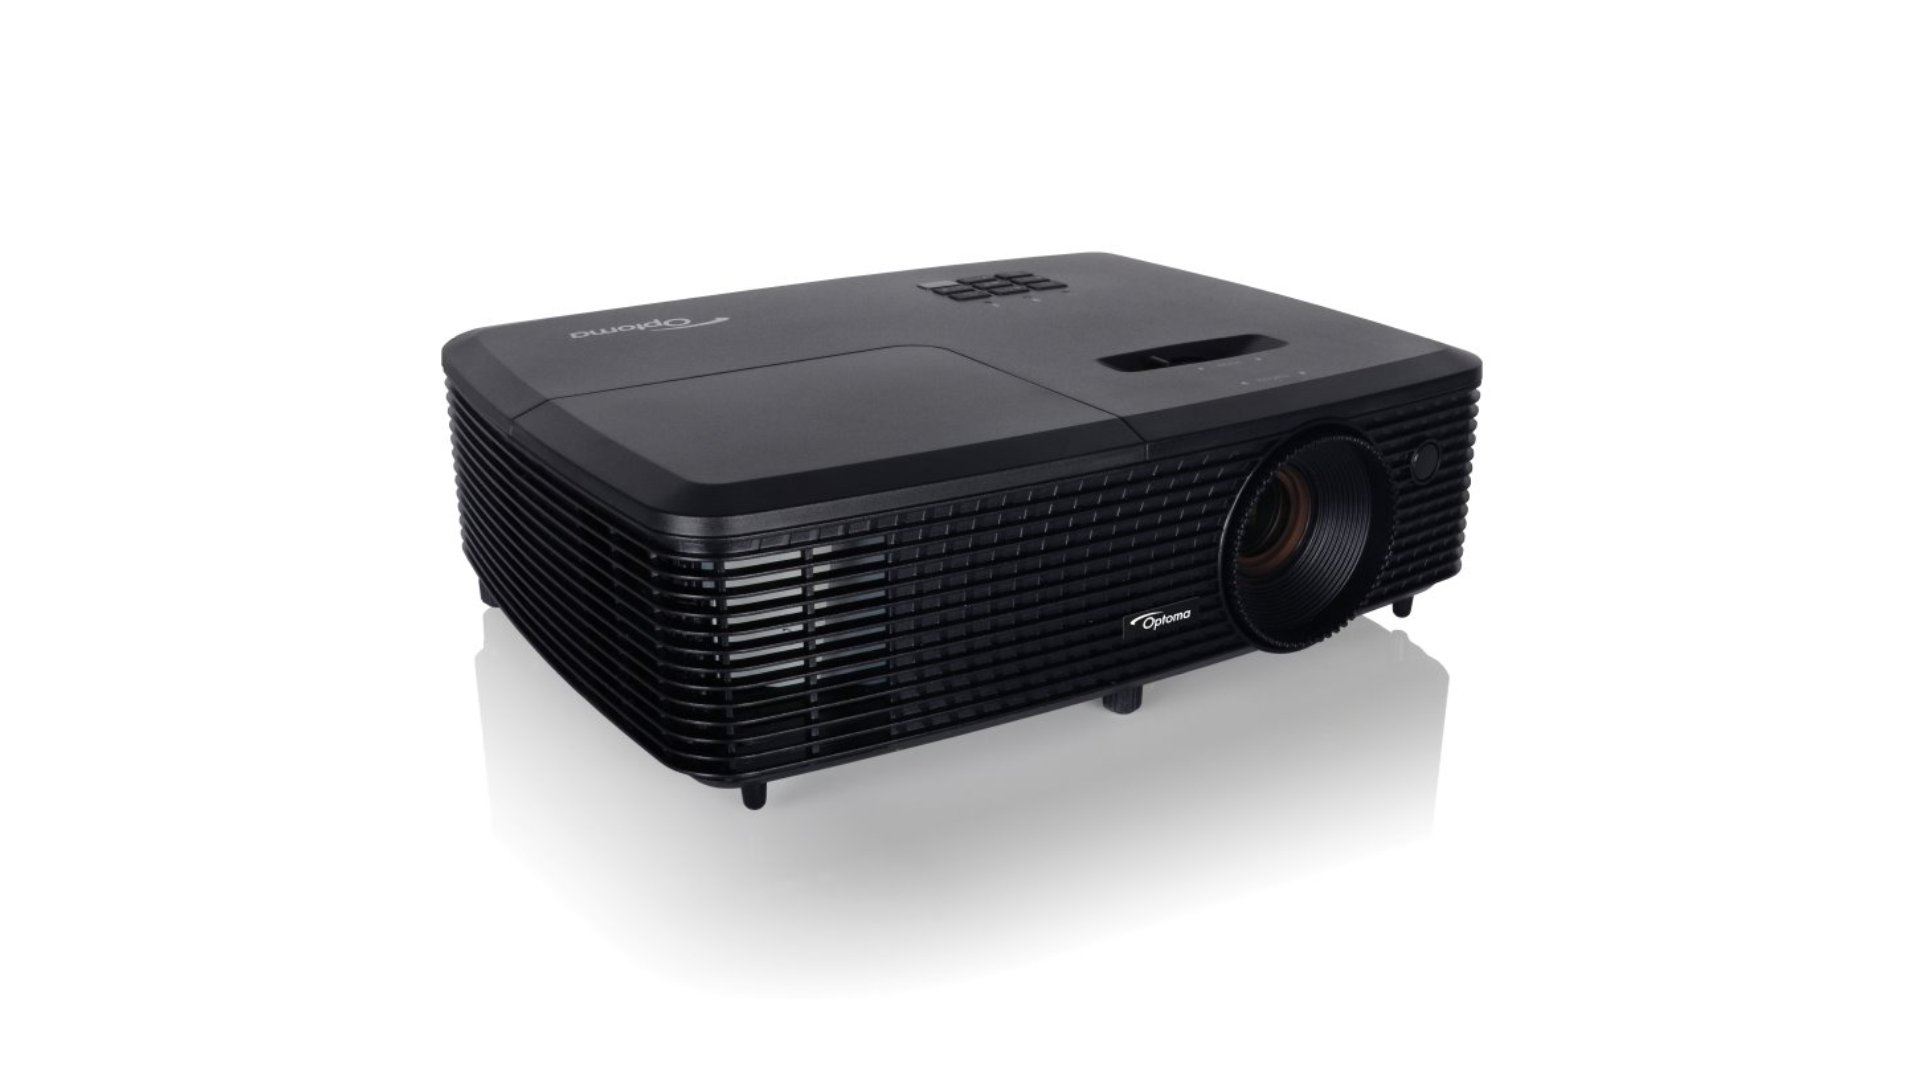 WXGA (1200 x 768) Resolution, 3200 Lumen,  Full 3D, Projector with HDMI